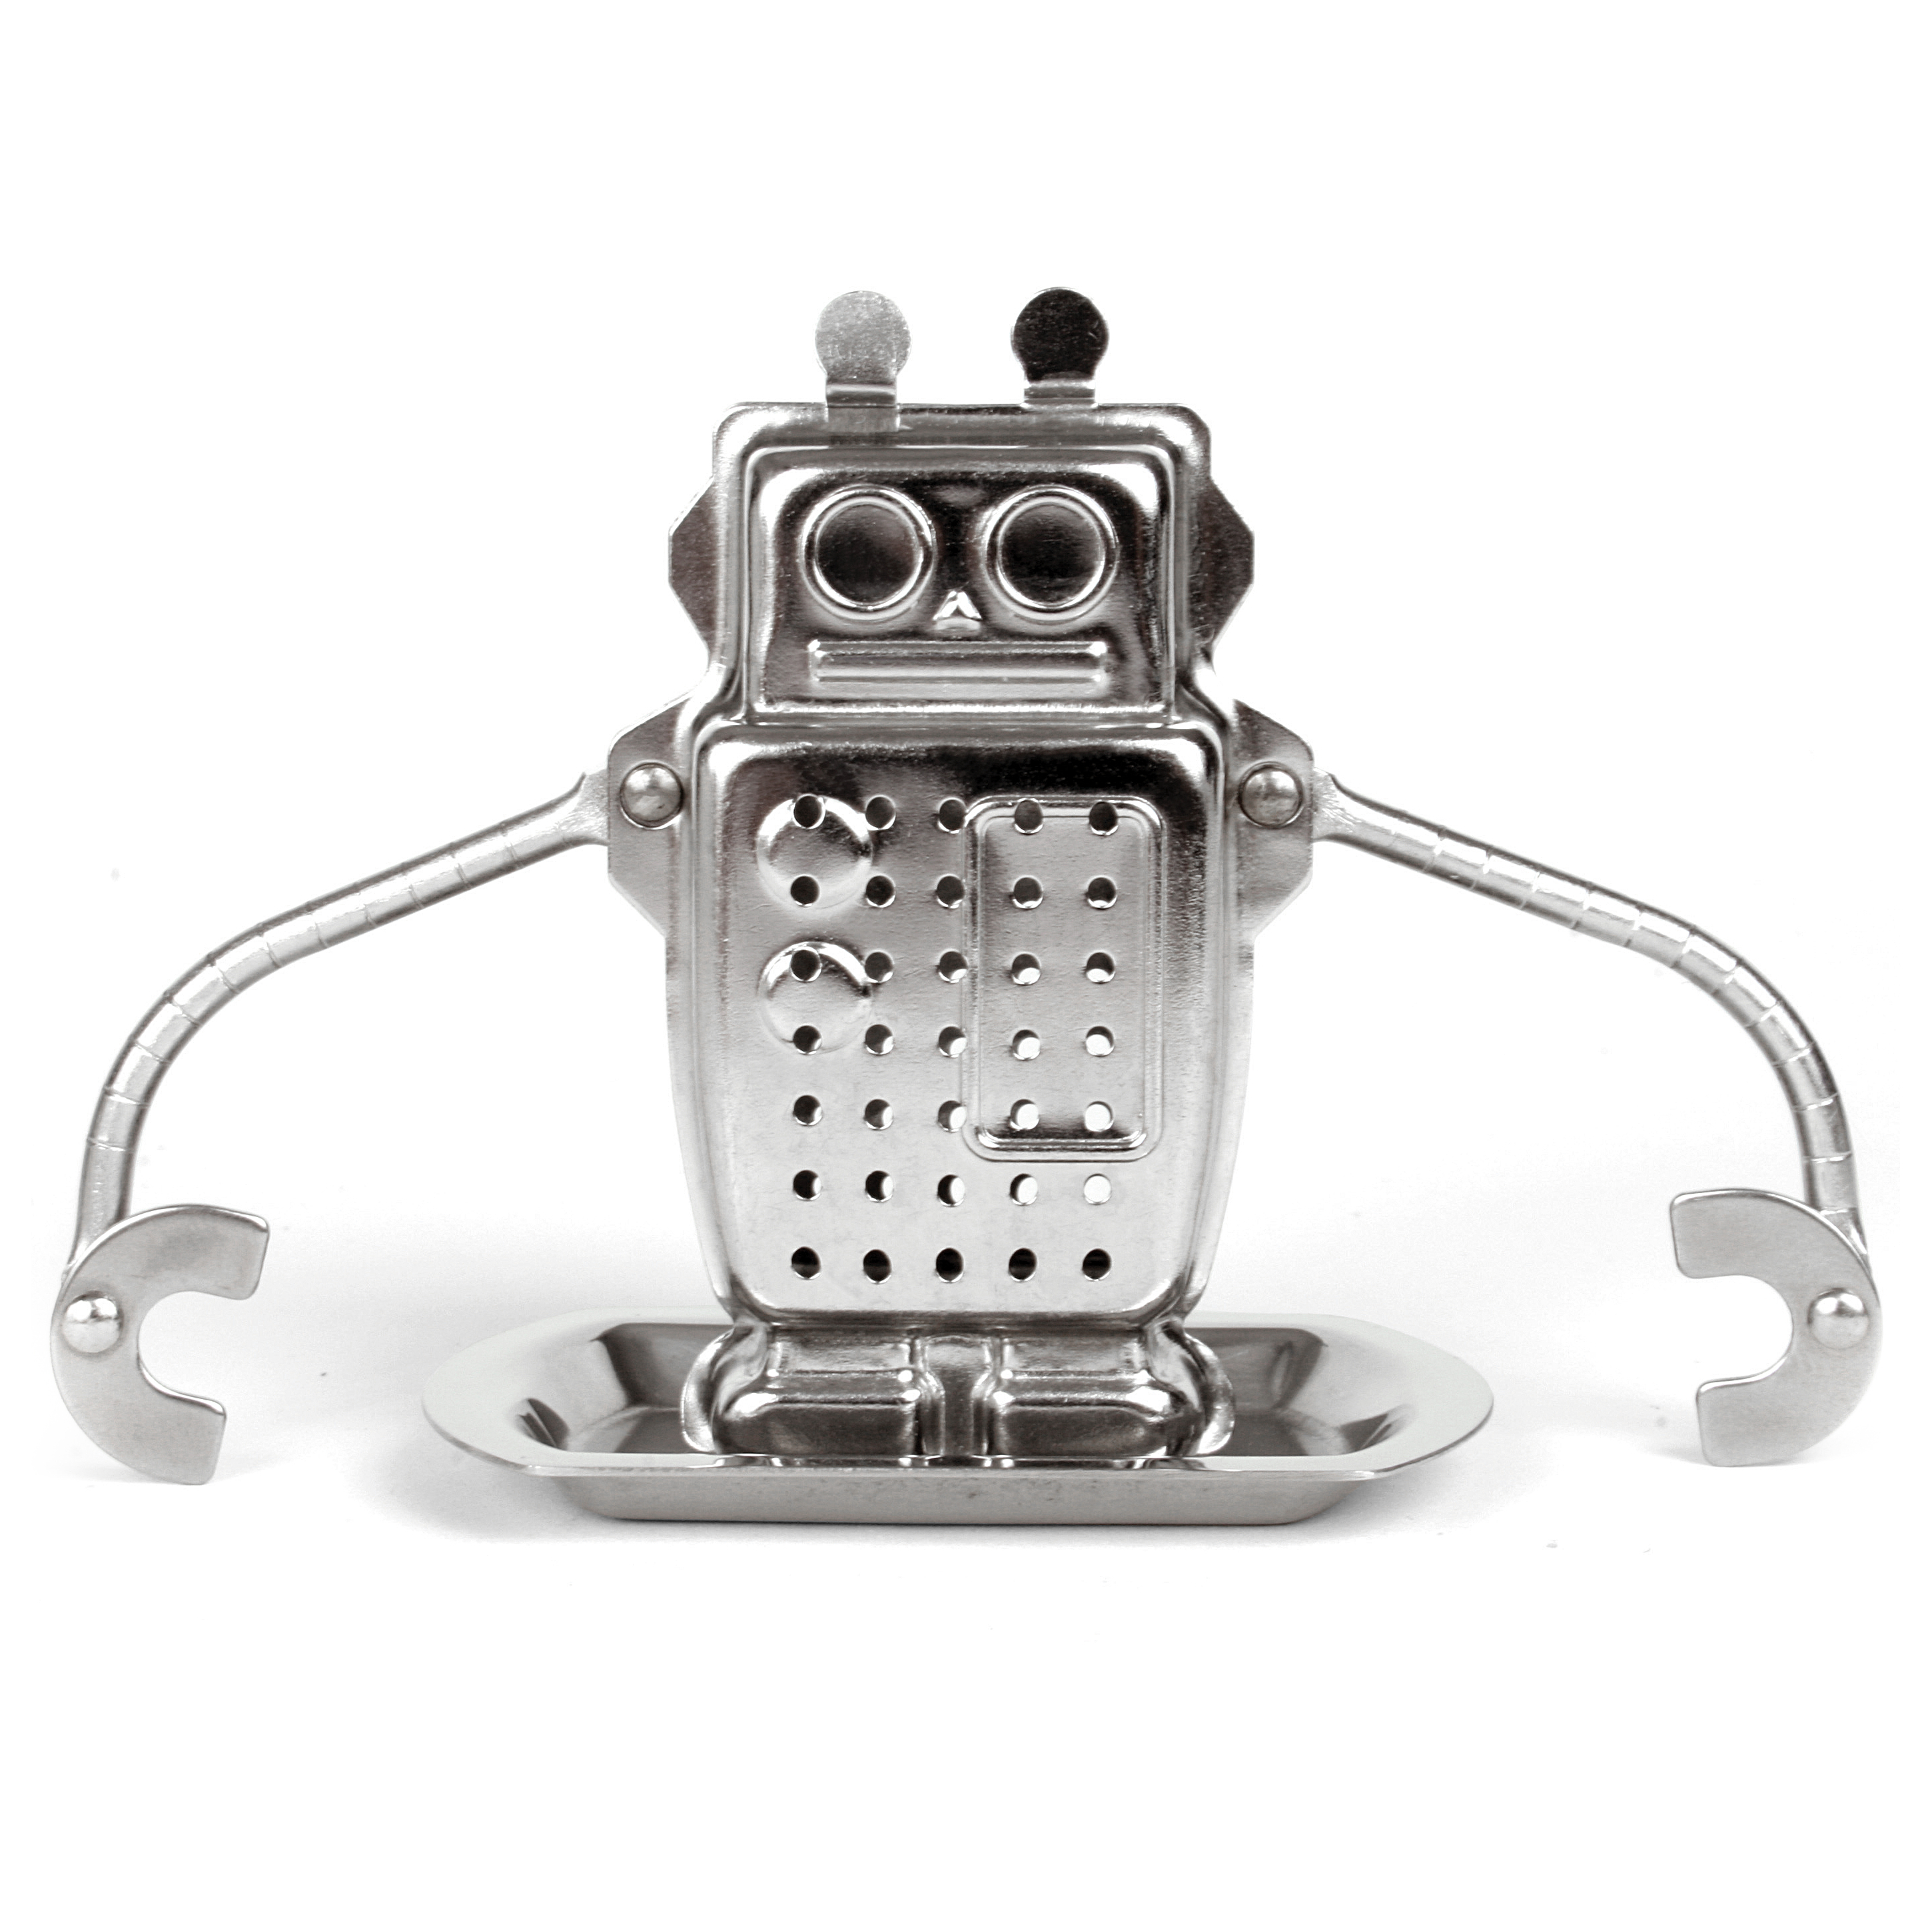 Kikkerland Robot Stainless Steel Tea Infuser